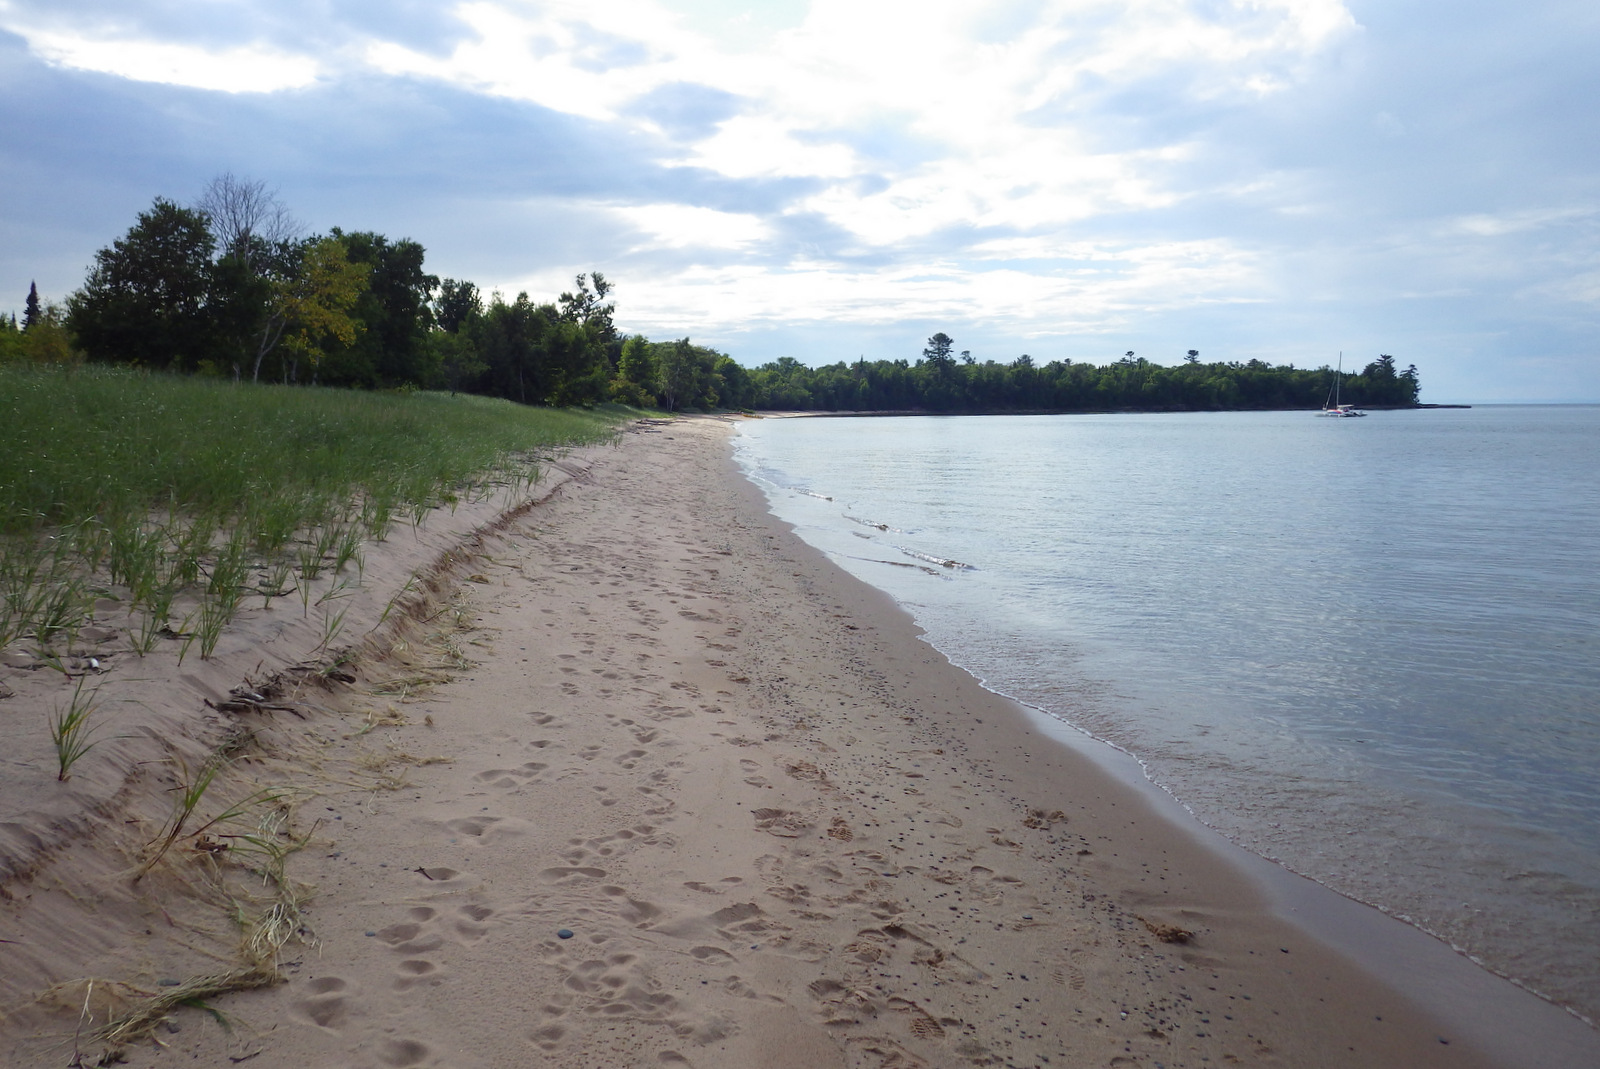 The sandy beach at York Island